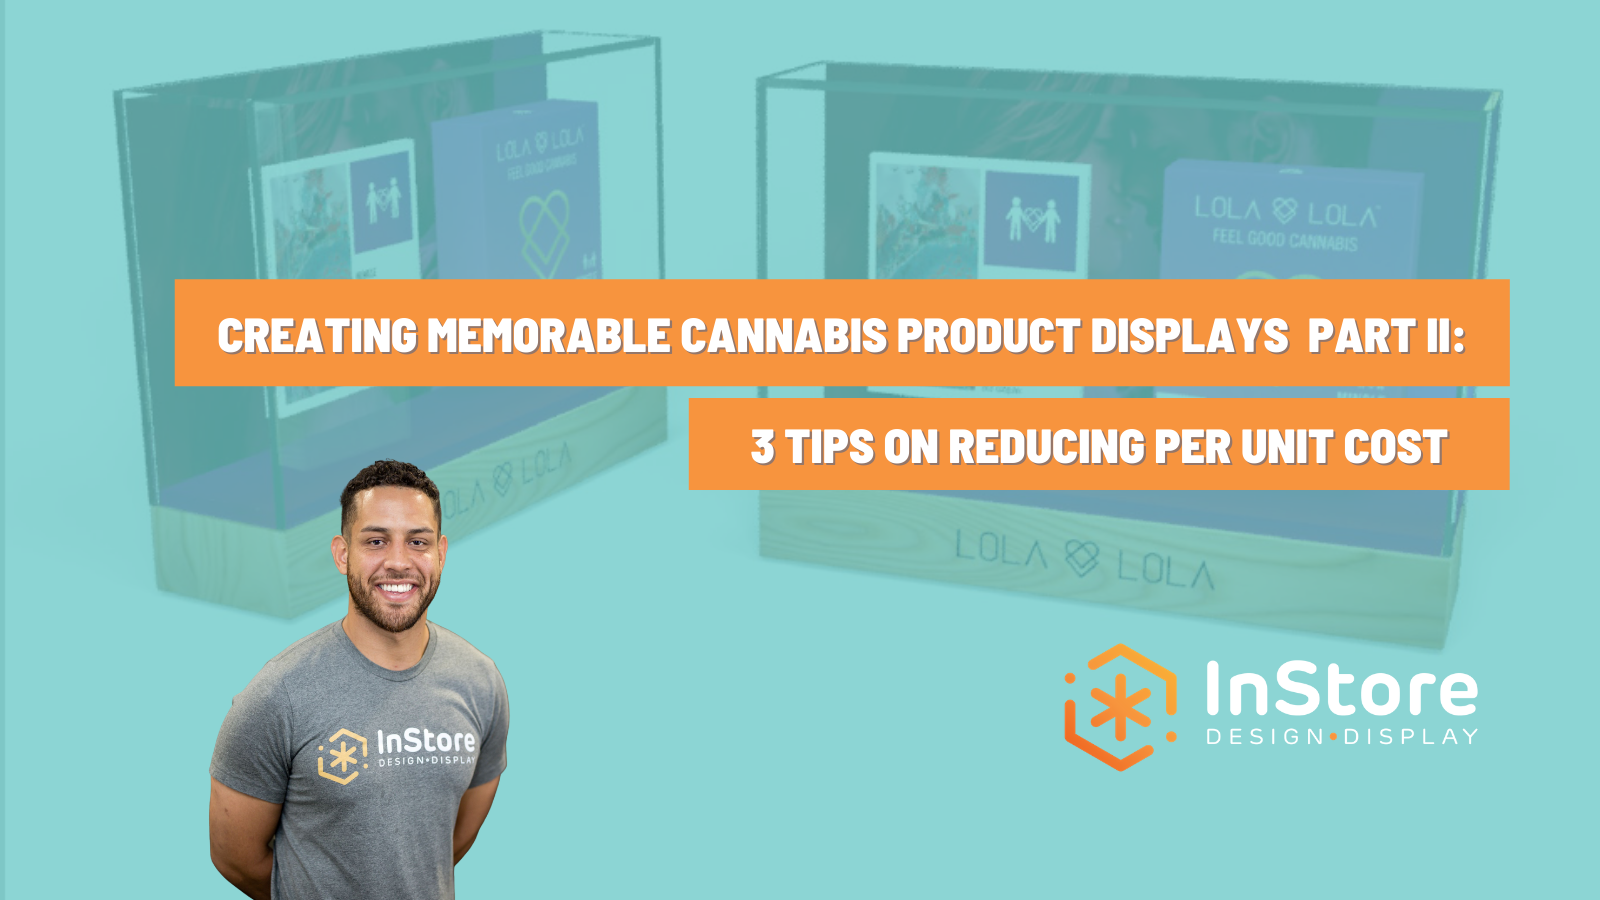 Part II: 3 Tips to Reduce per unit Cost of Cannabis Retail Displays